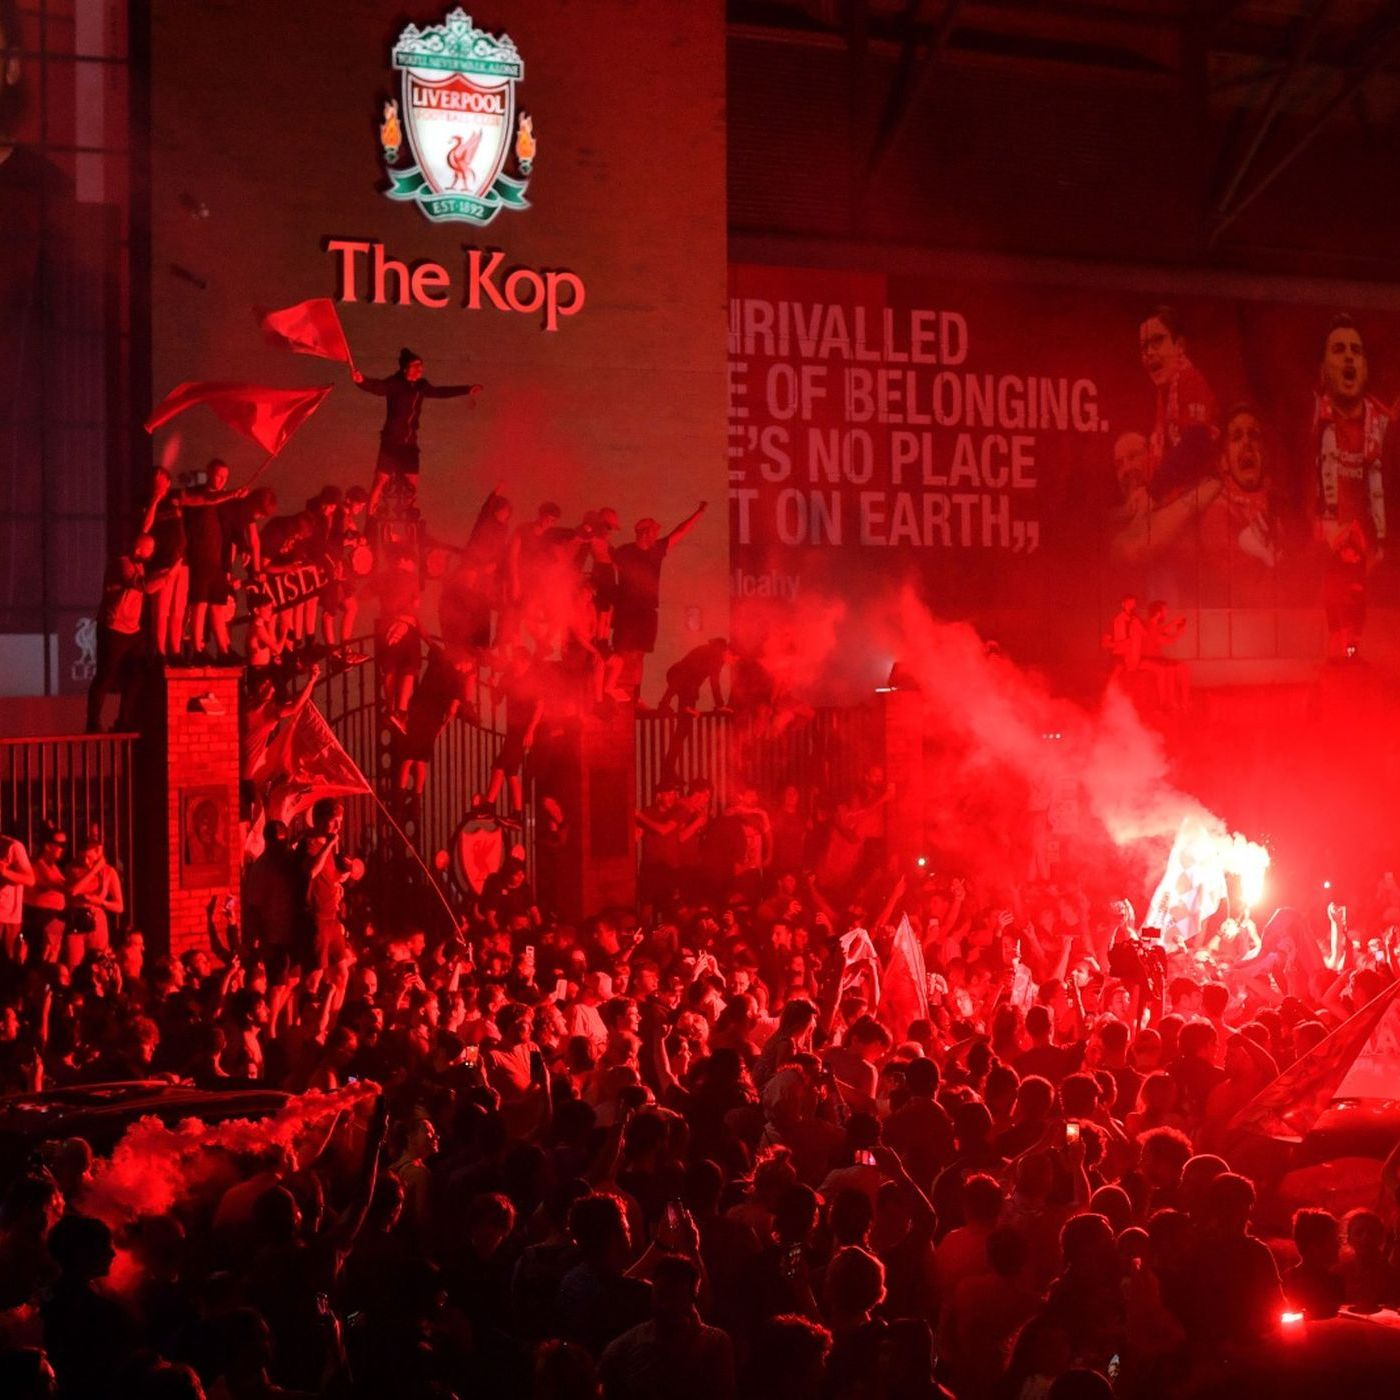 Post-Game: LIVERPOOL CROWNED PREMIER LEAGUE CHAMPIONS | No 19 heading to Anfield on historic night